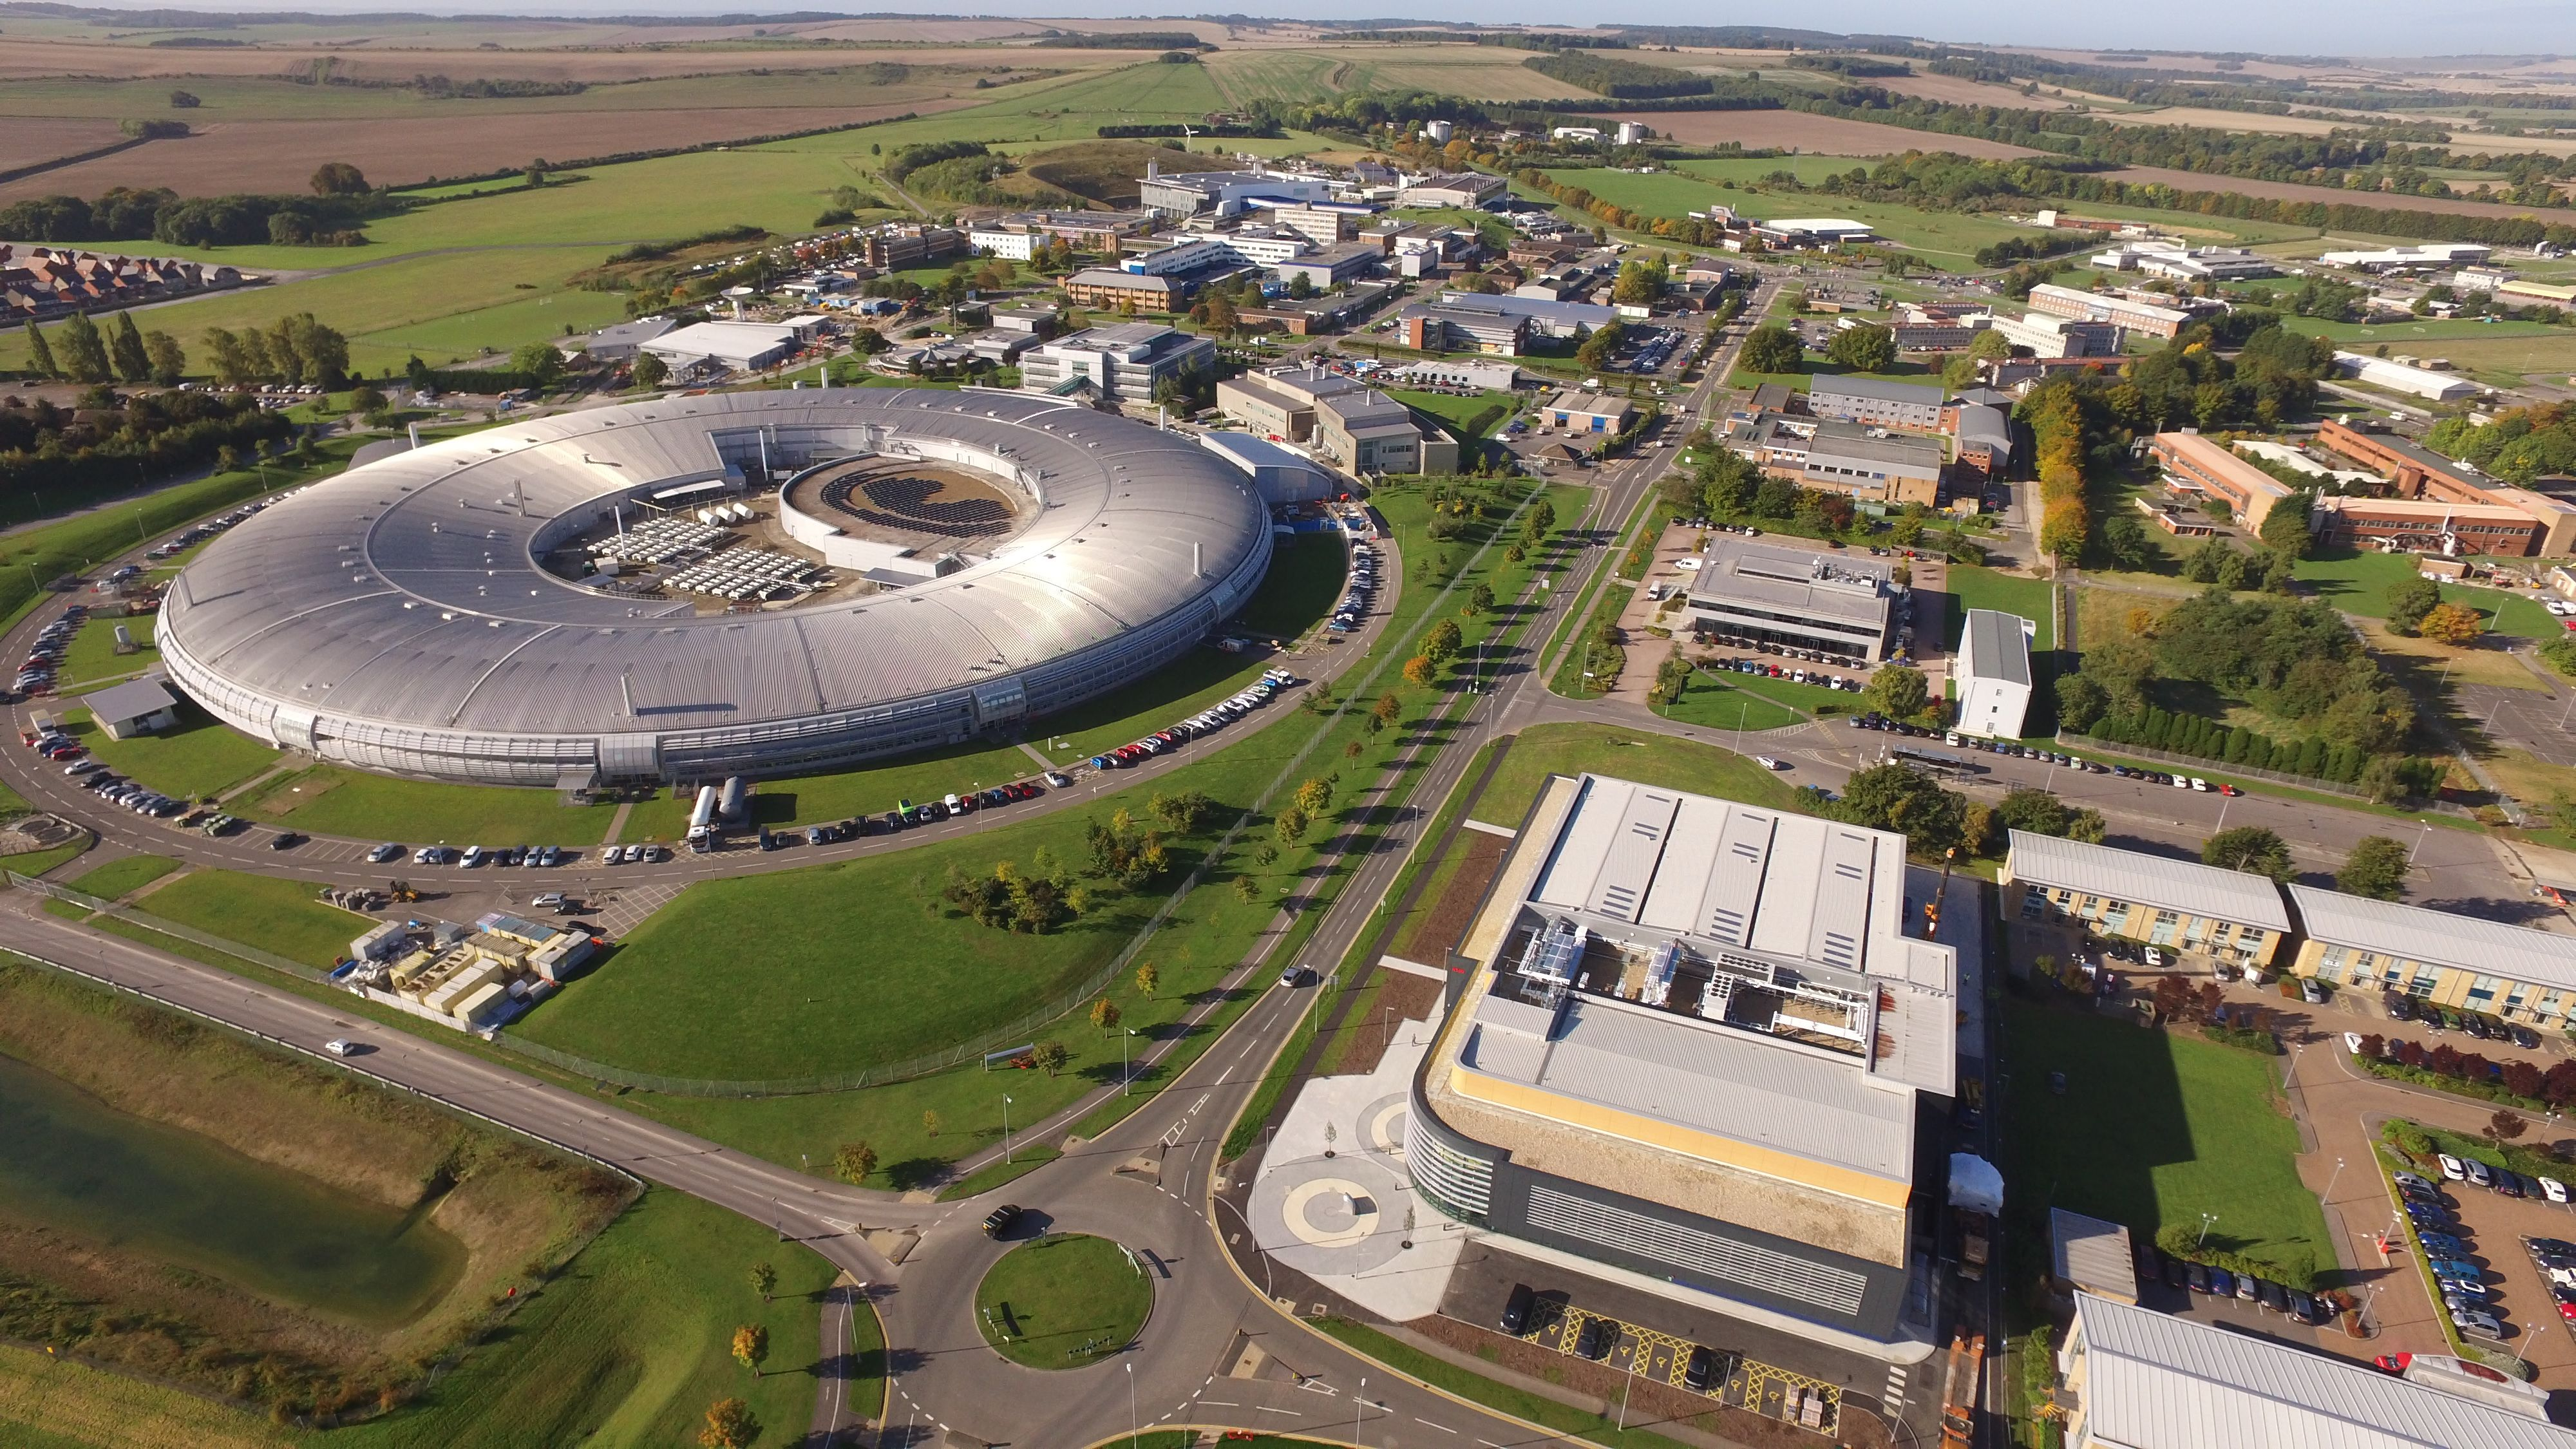 As part of its industrial strategy, the government has announced investment of over £100m to create the Rosalind Franklin Institute, to be based at Harwell in Oxfordshire.